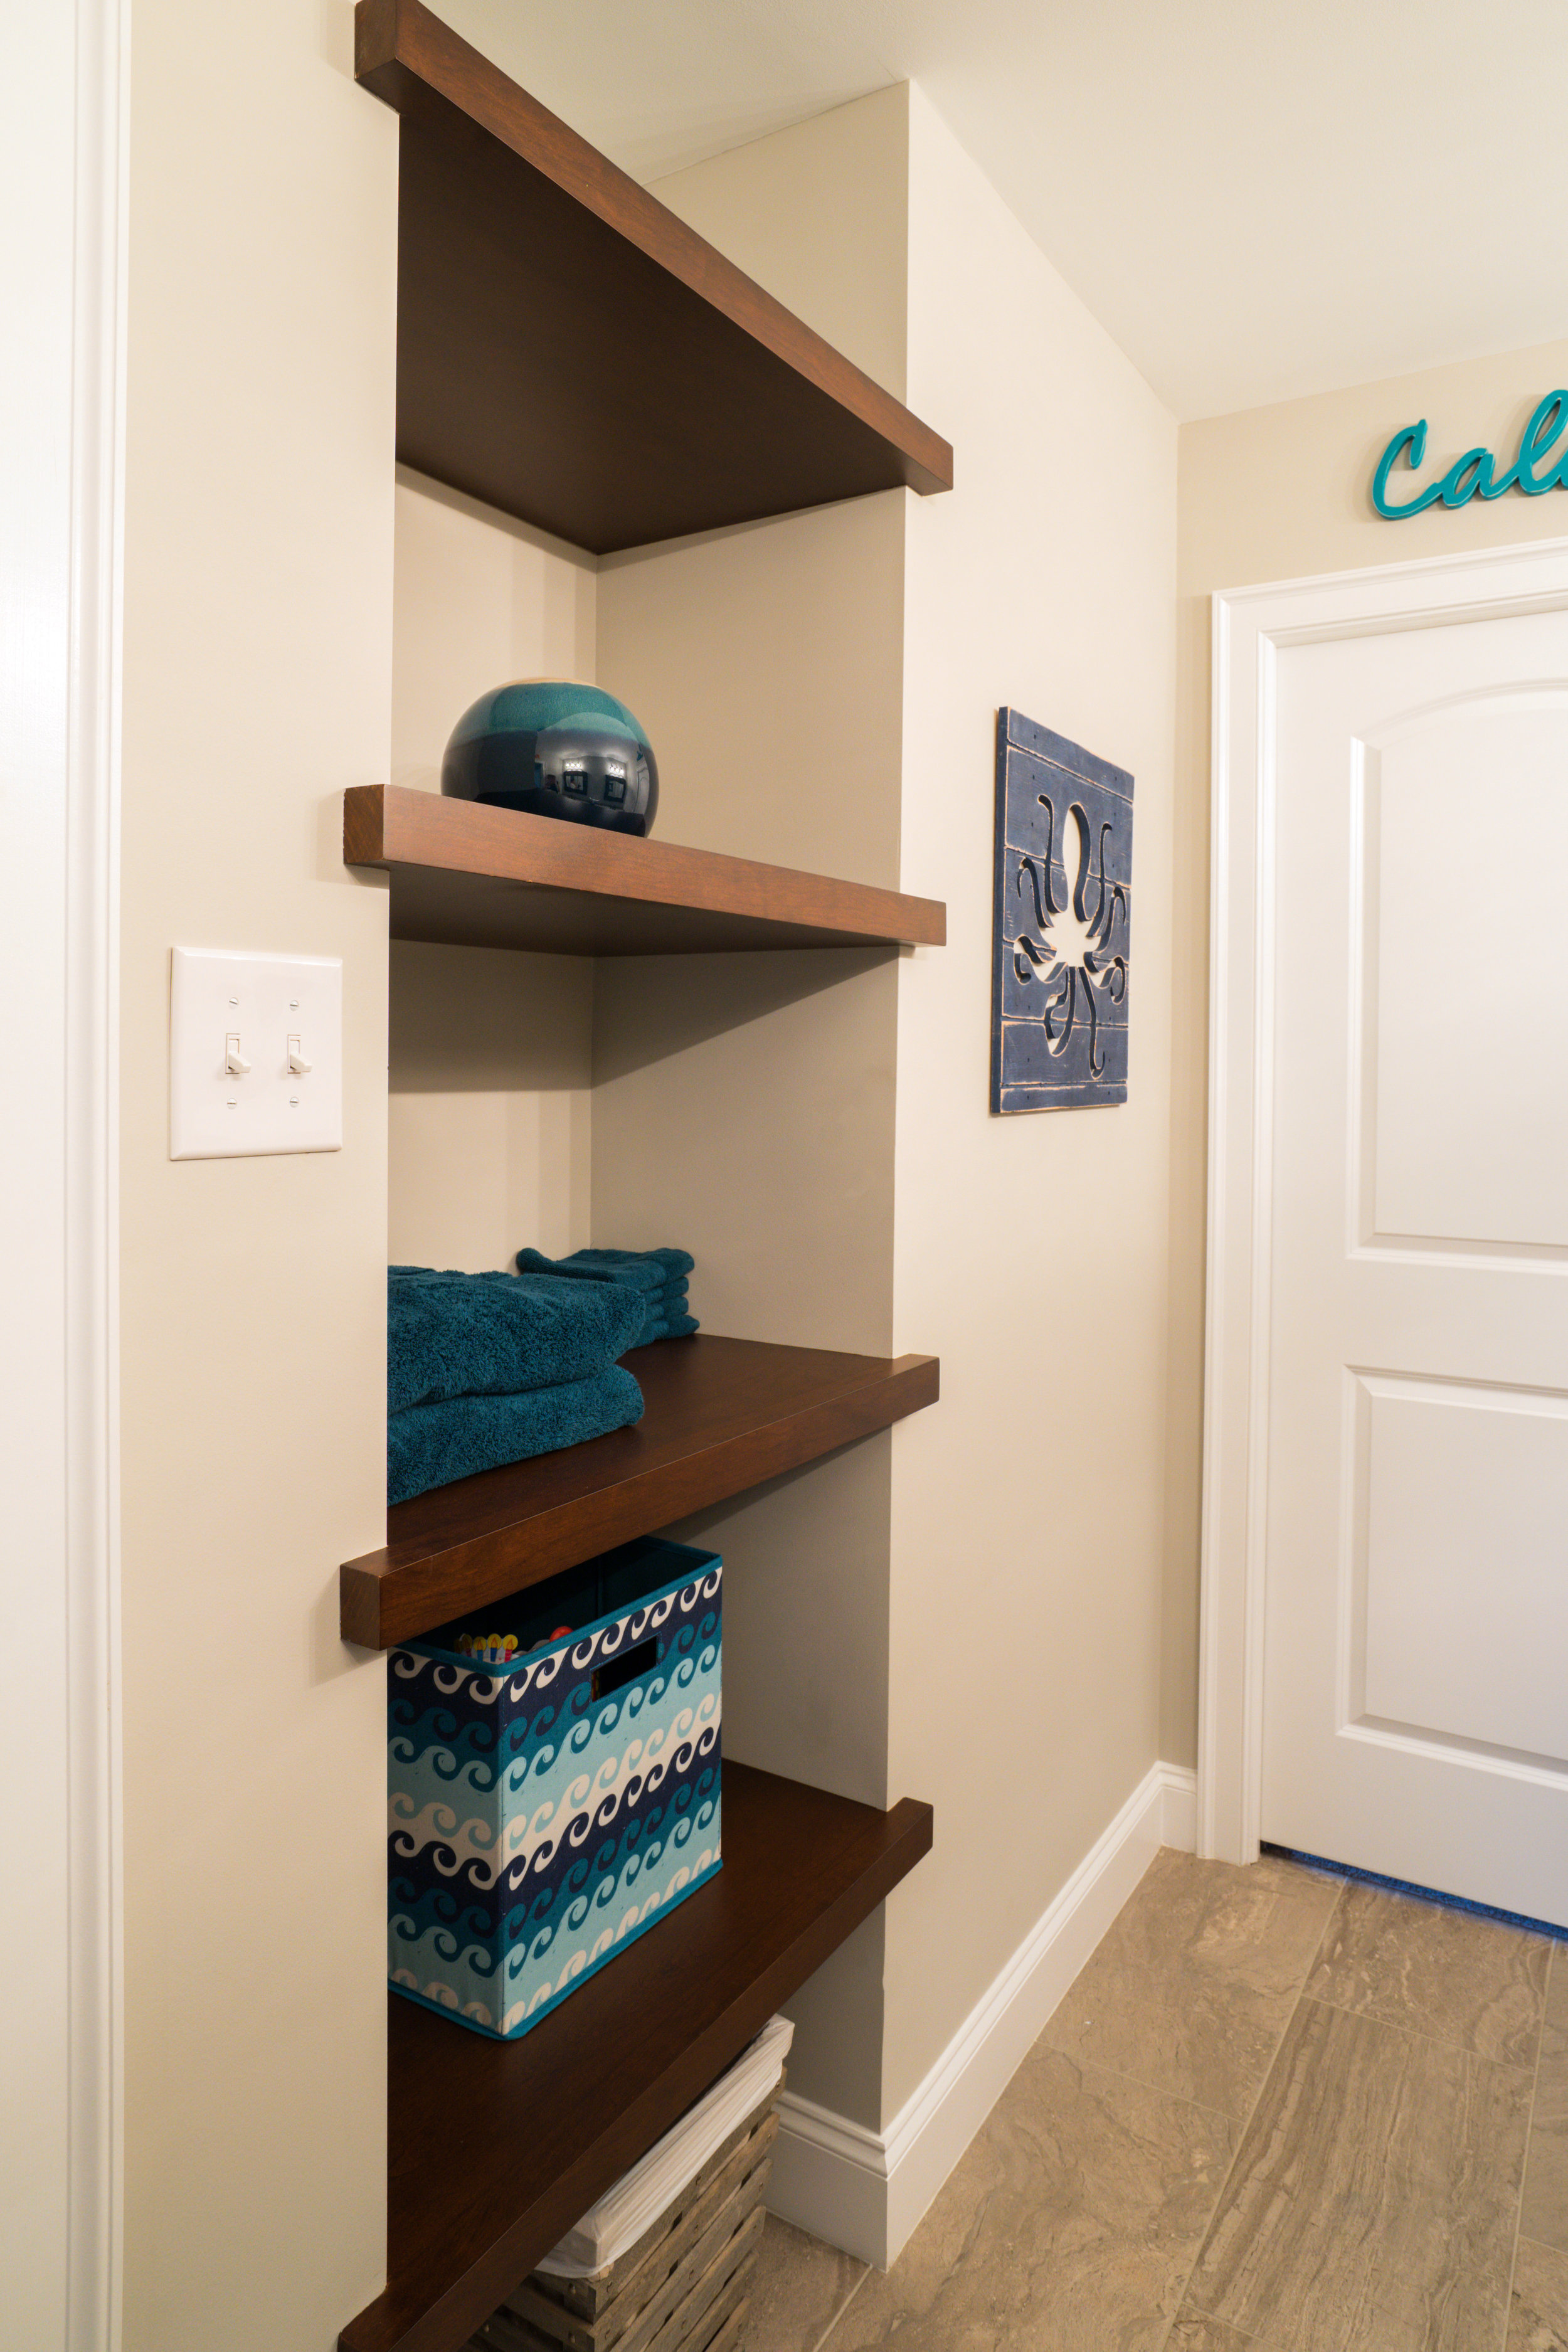 Floating shelves in Niche